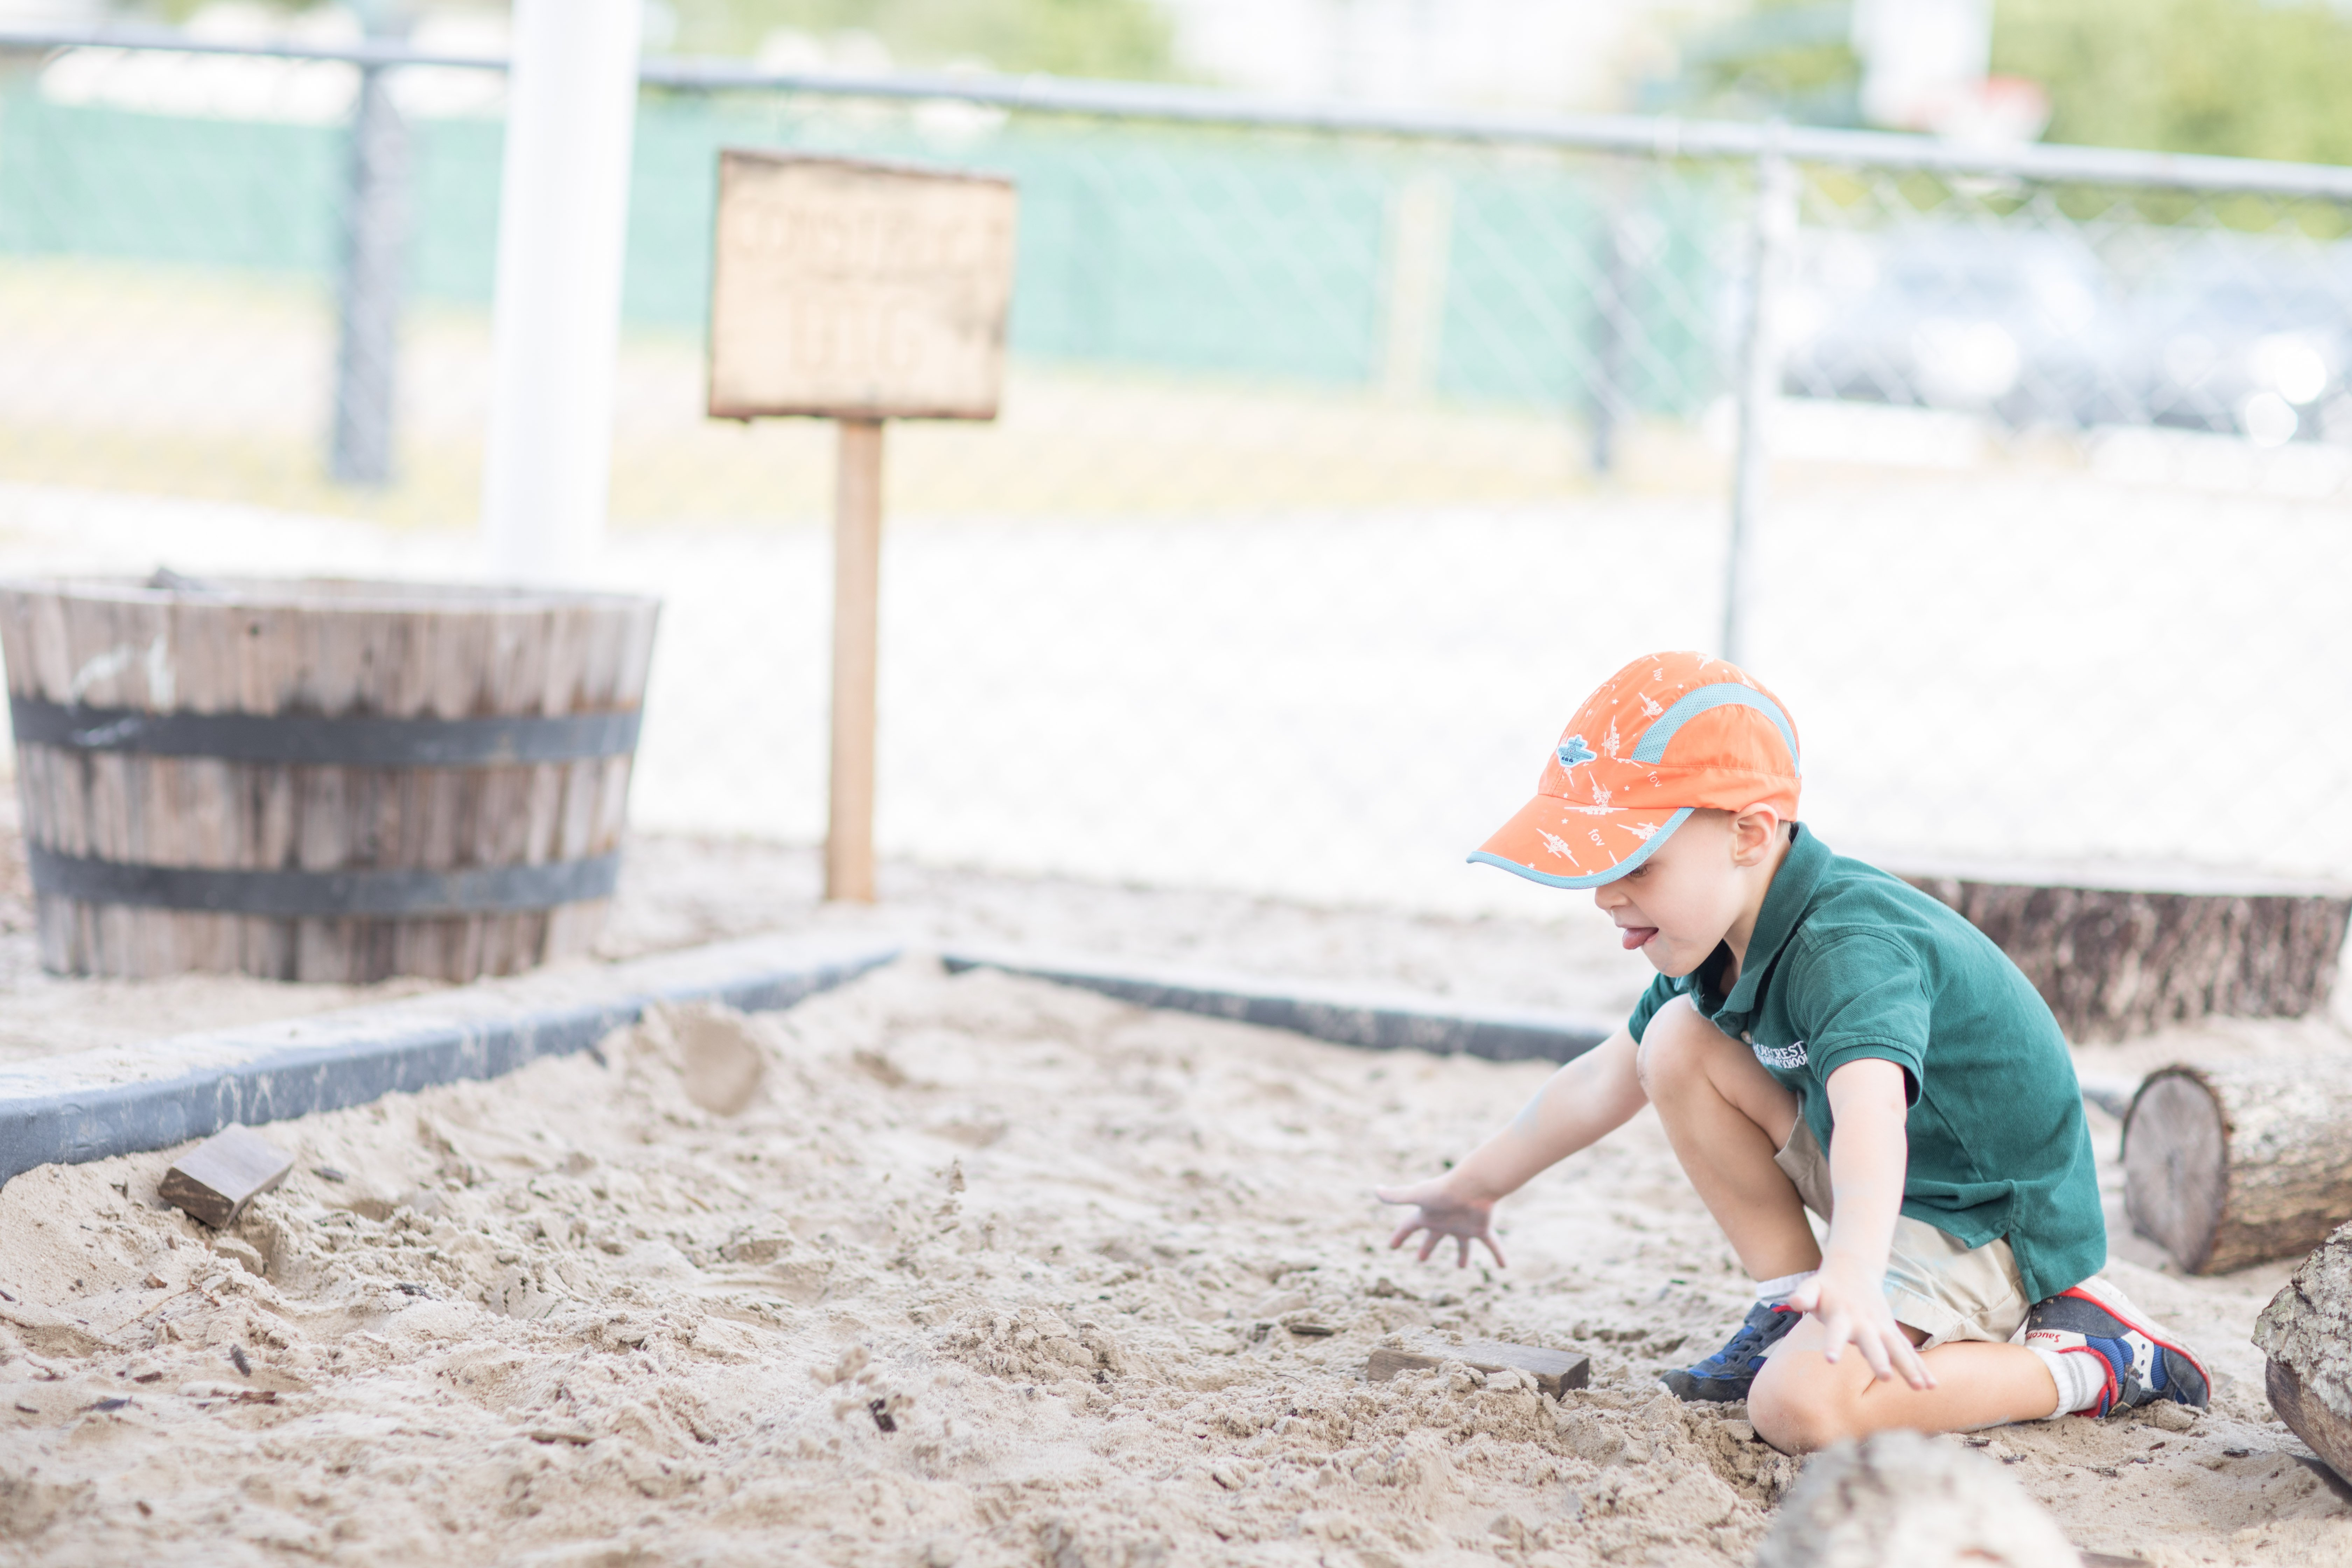 The Experiential School of Tampa Bay promotes outdoor free play